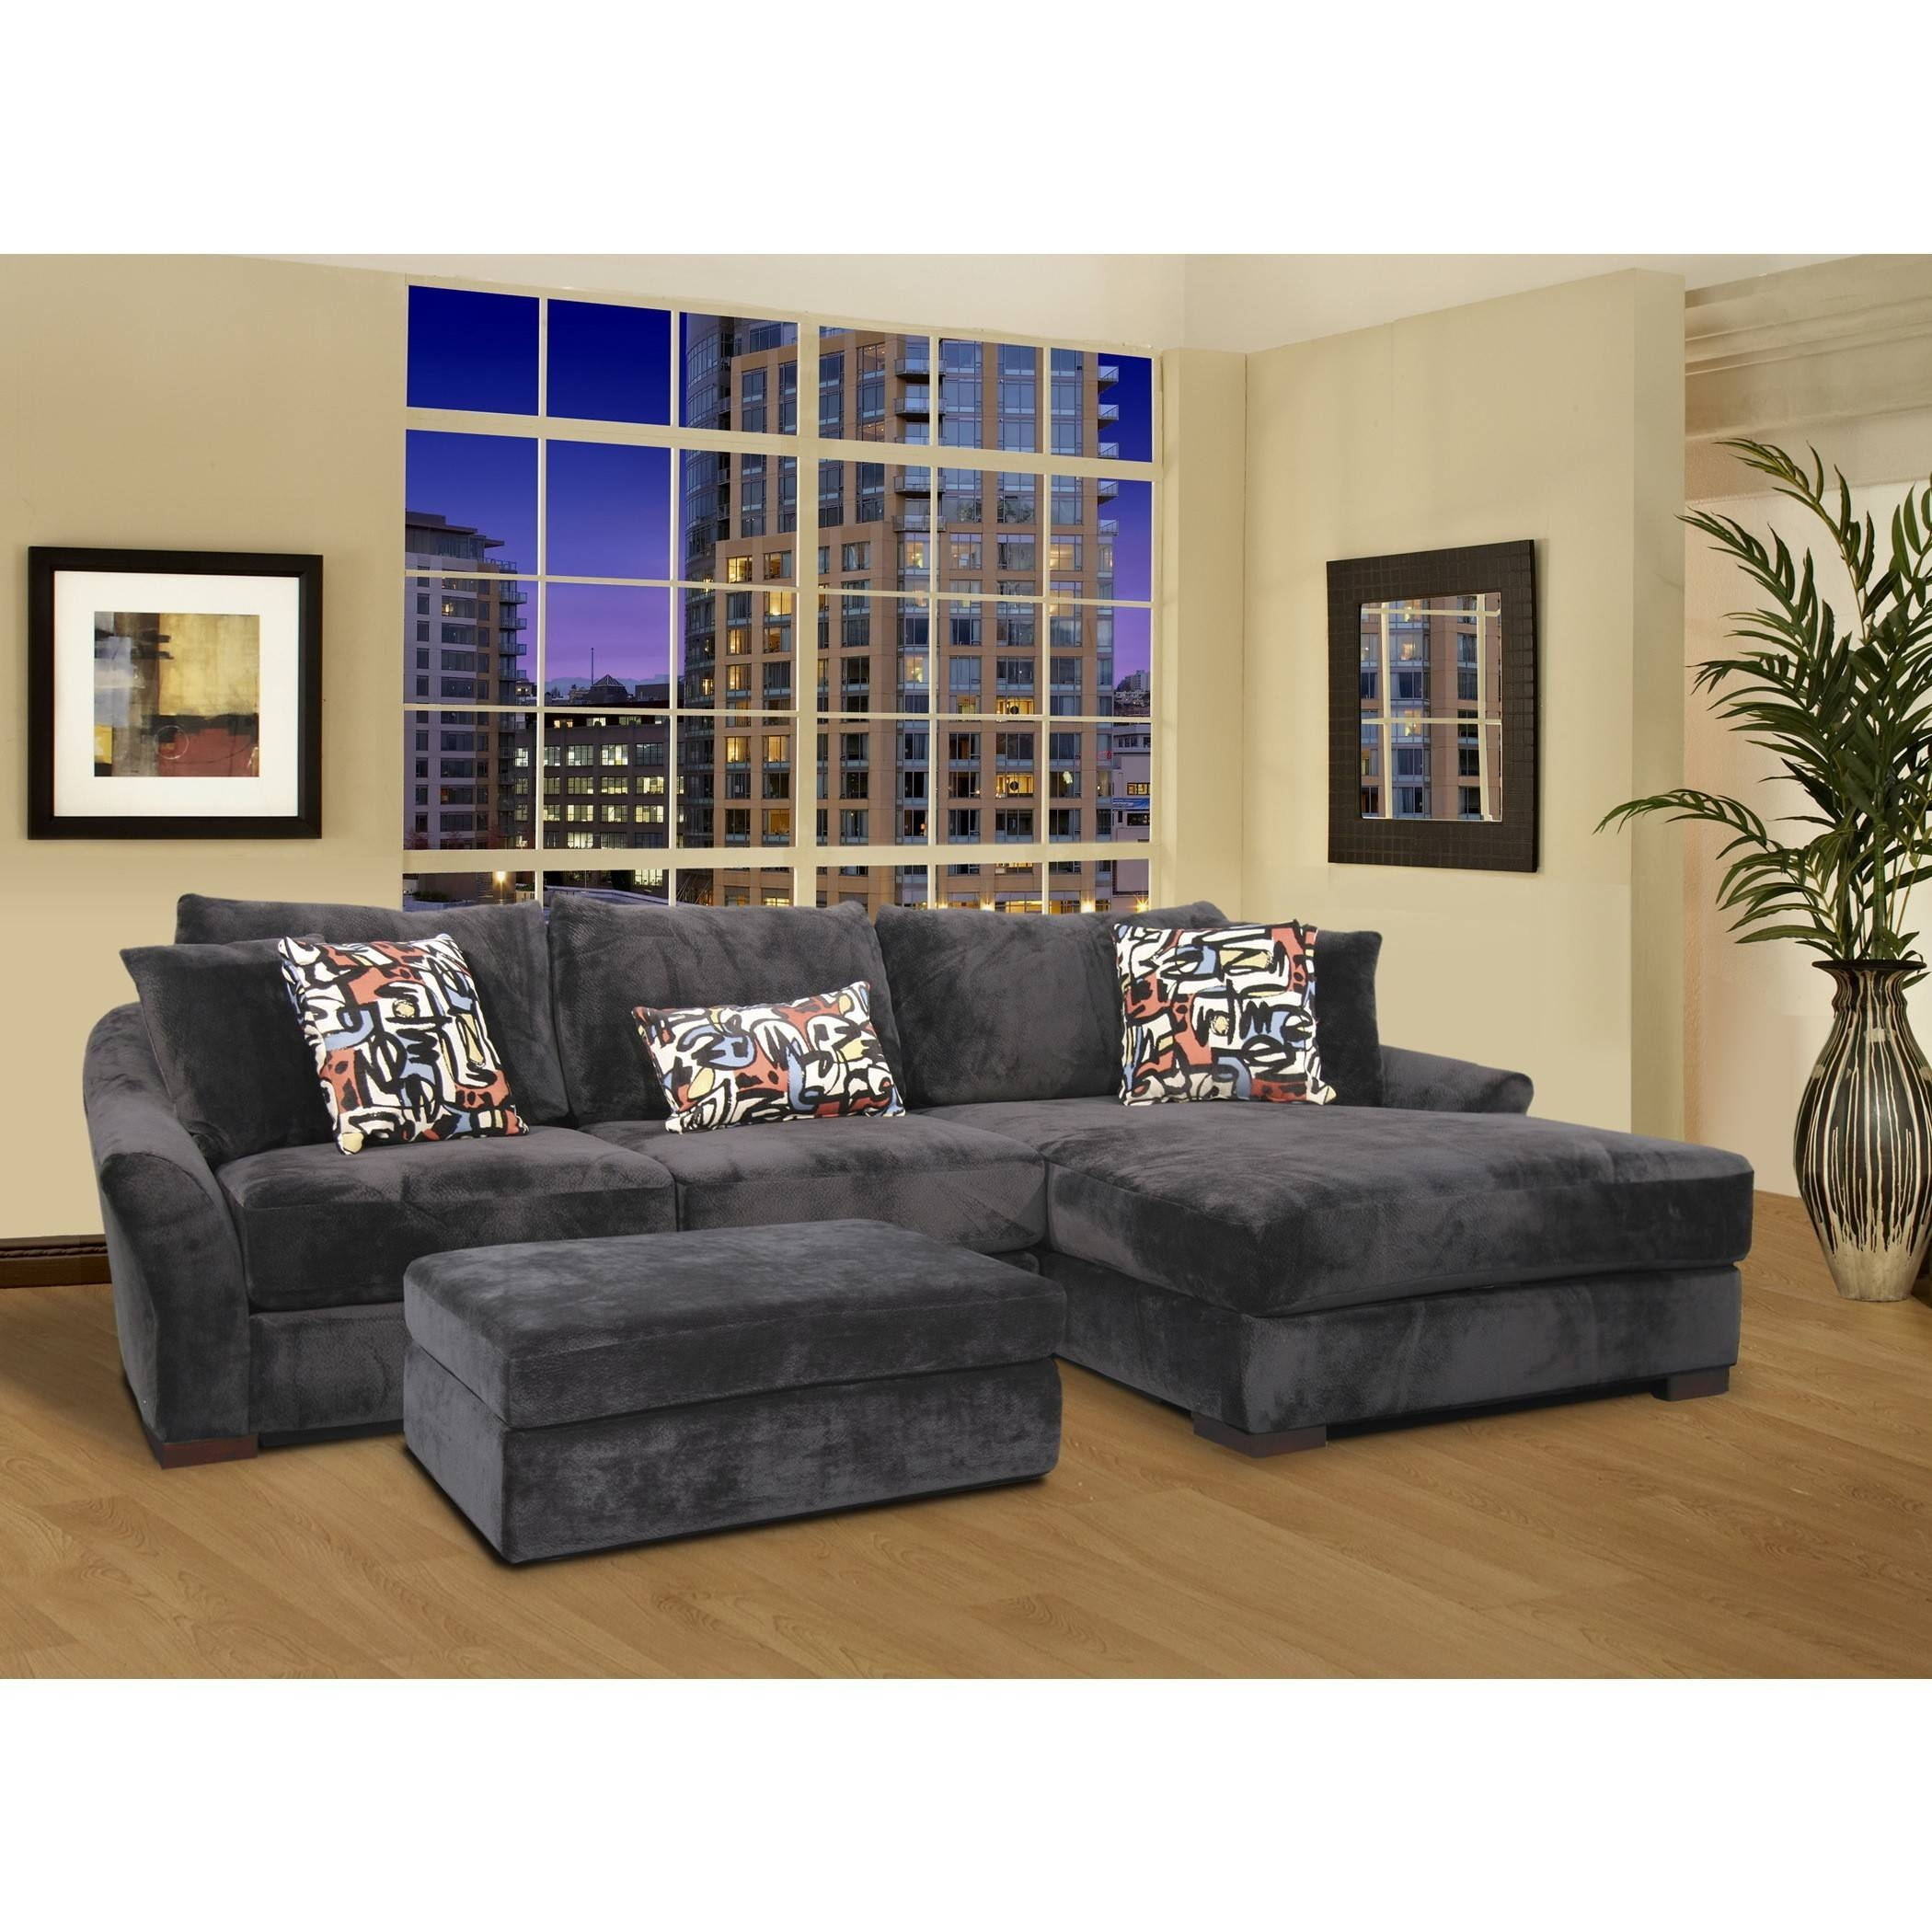 Furniture: Comfortable Deep Seat Sectional For Your Living Room with regard to Wide Seat Sectional Sofas (Image 15 of 25)